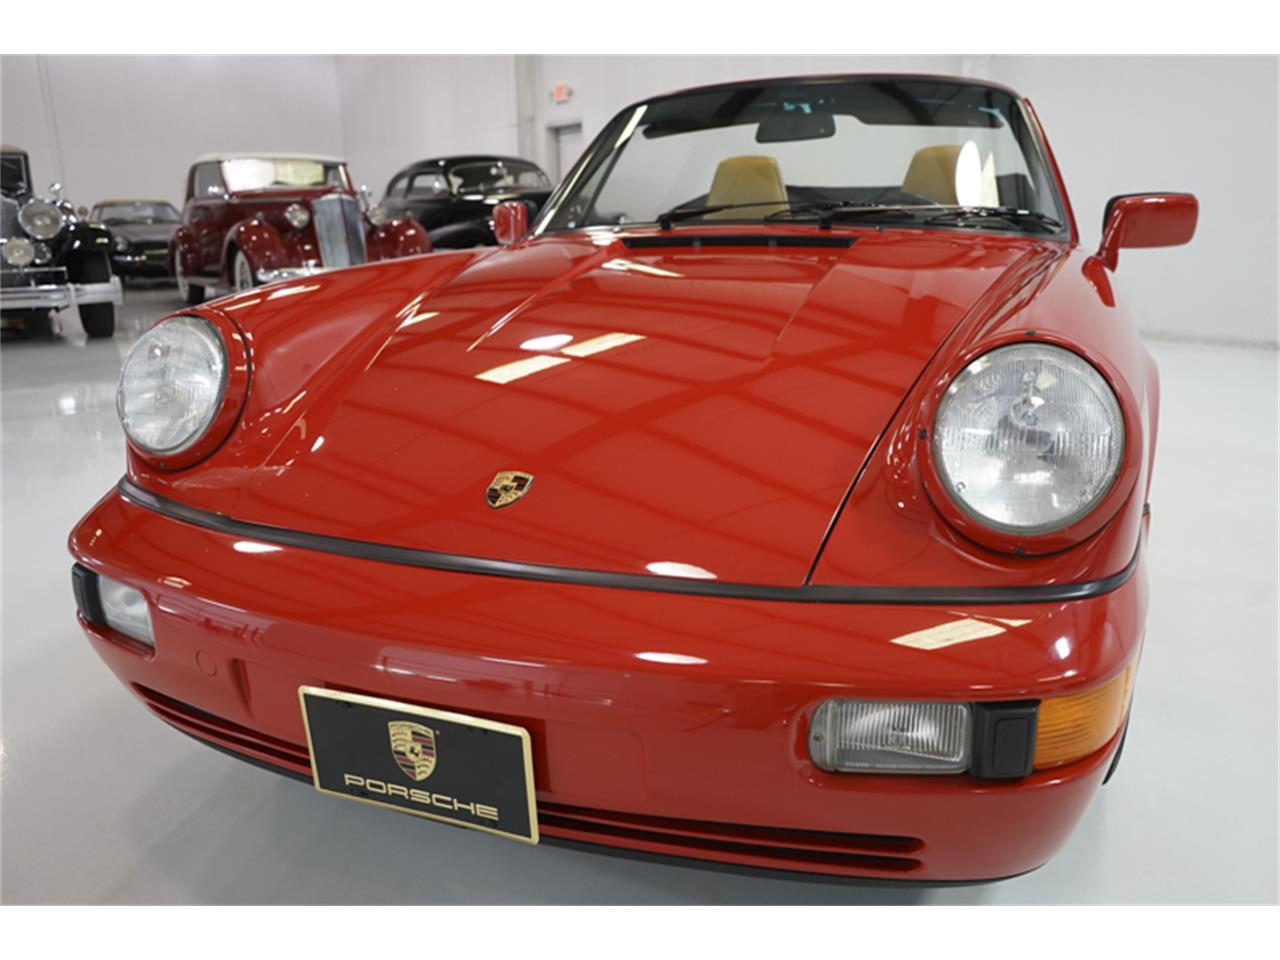 1991 Porsche 911 Carrera 4 Cabriolet (CC-1334635) for sale in Saint Louis, Missouri